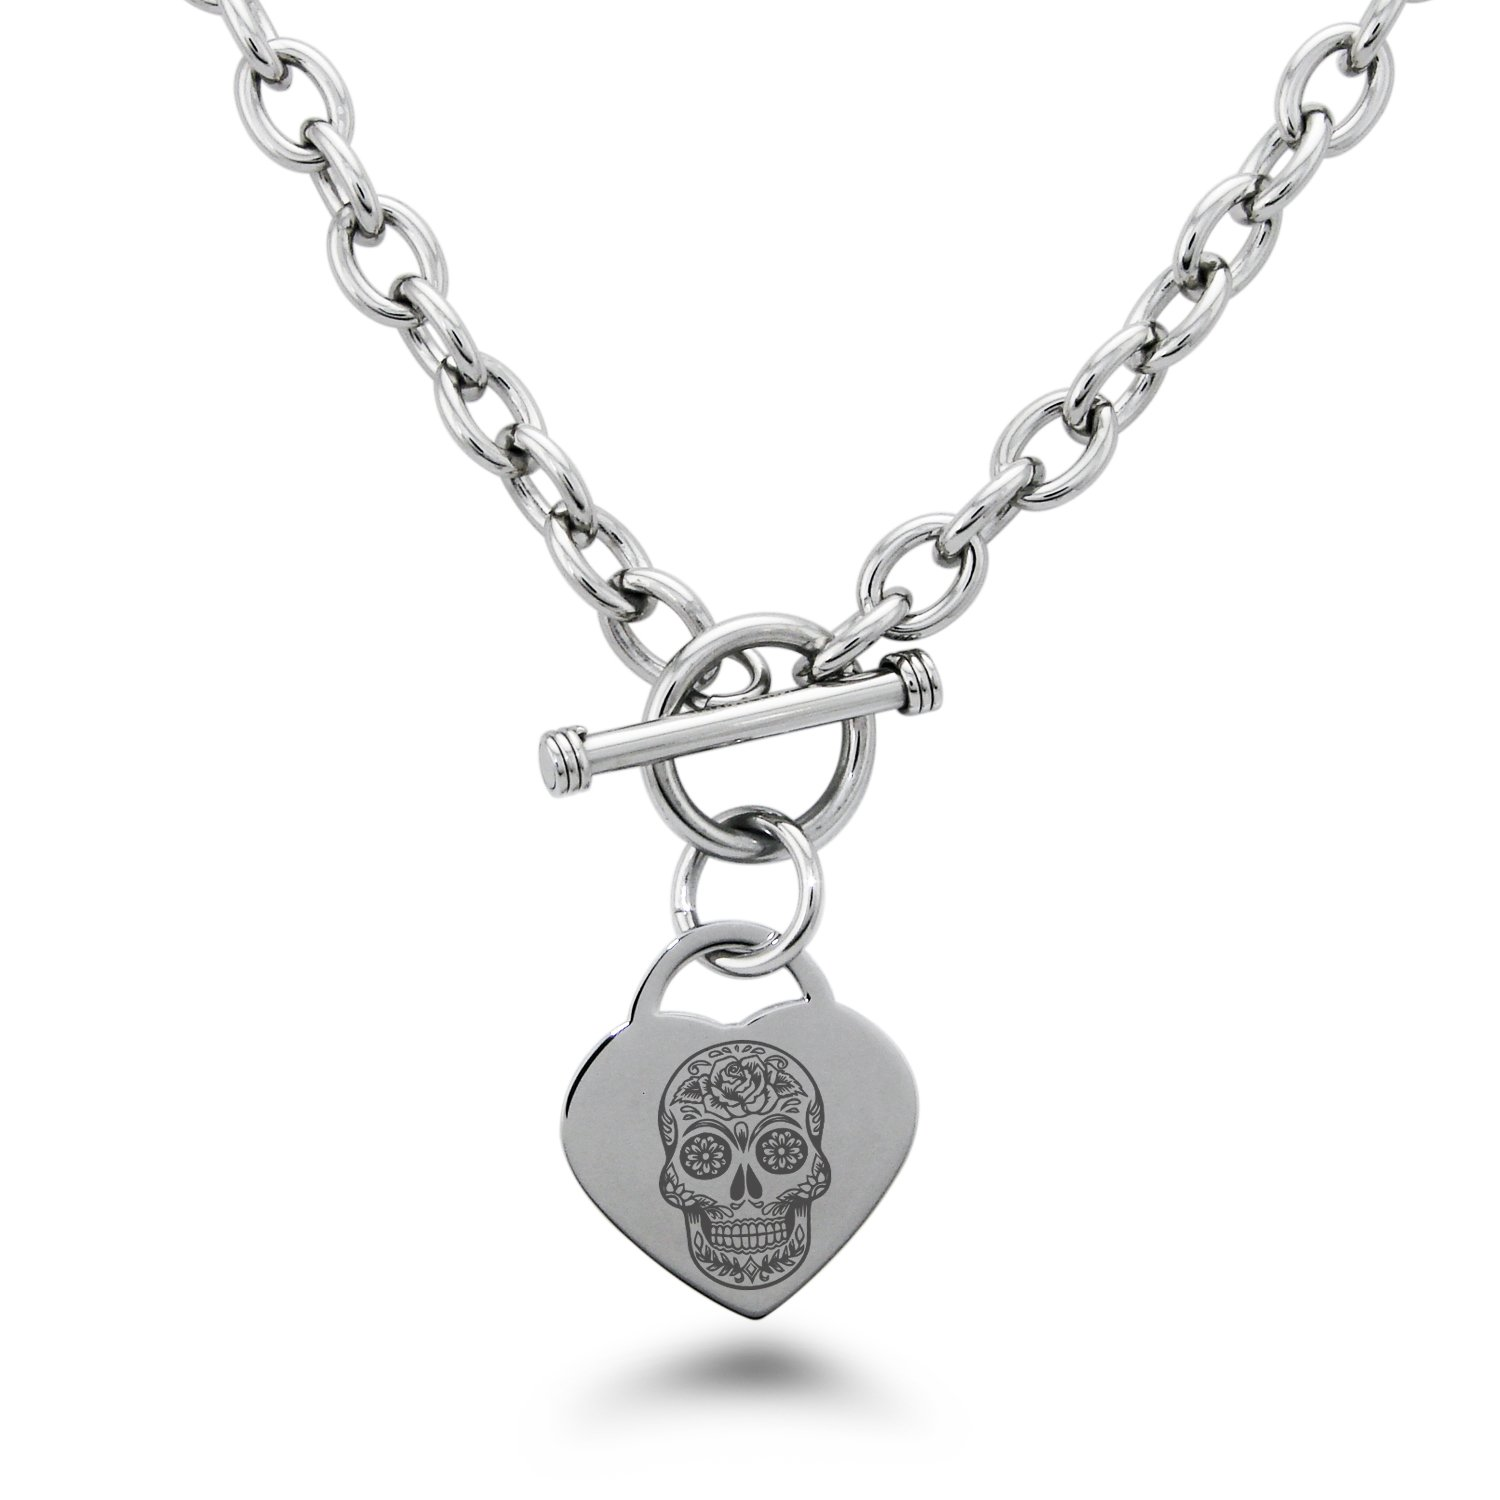 Tioneer Stainless Steel Day of The Dead Sugar Skull Symbols Heart Charm Bracelet /& Necklace